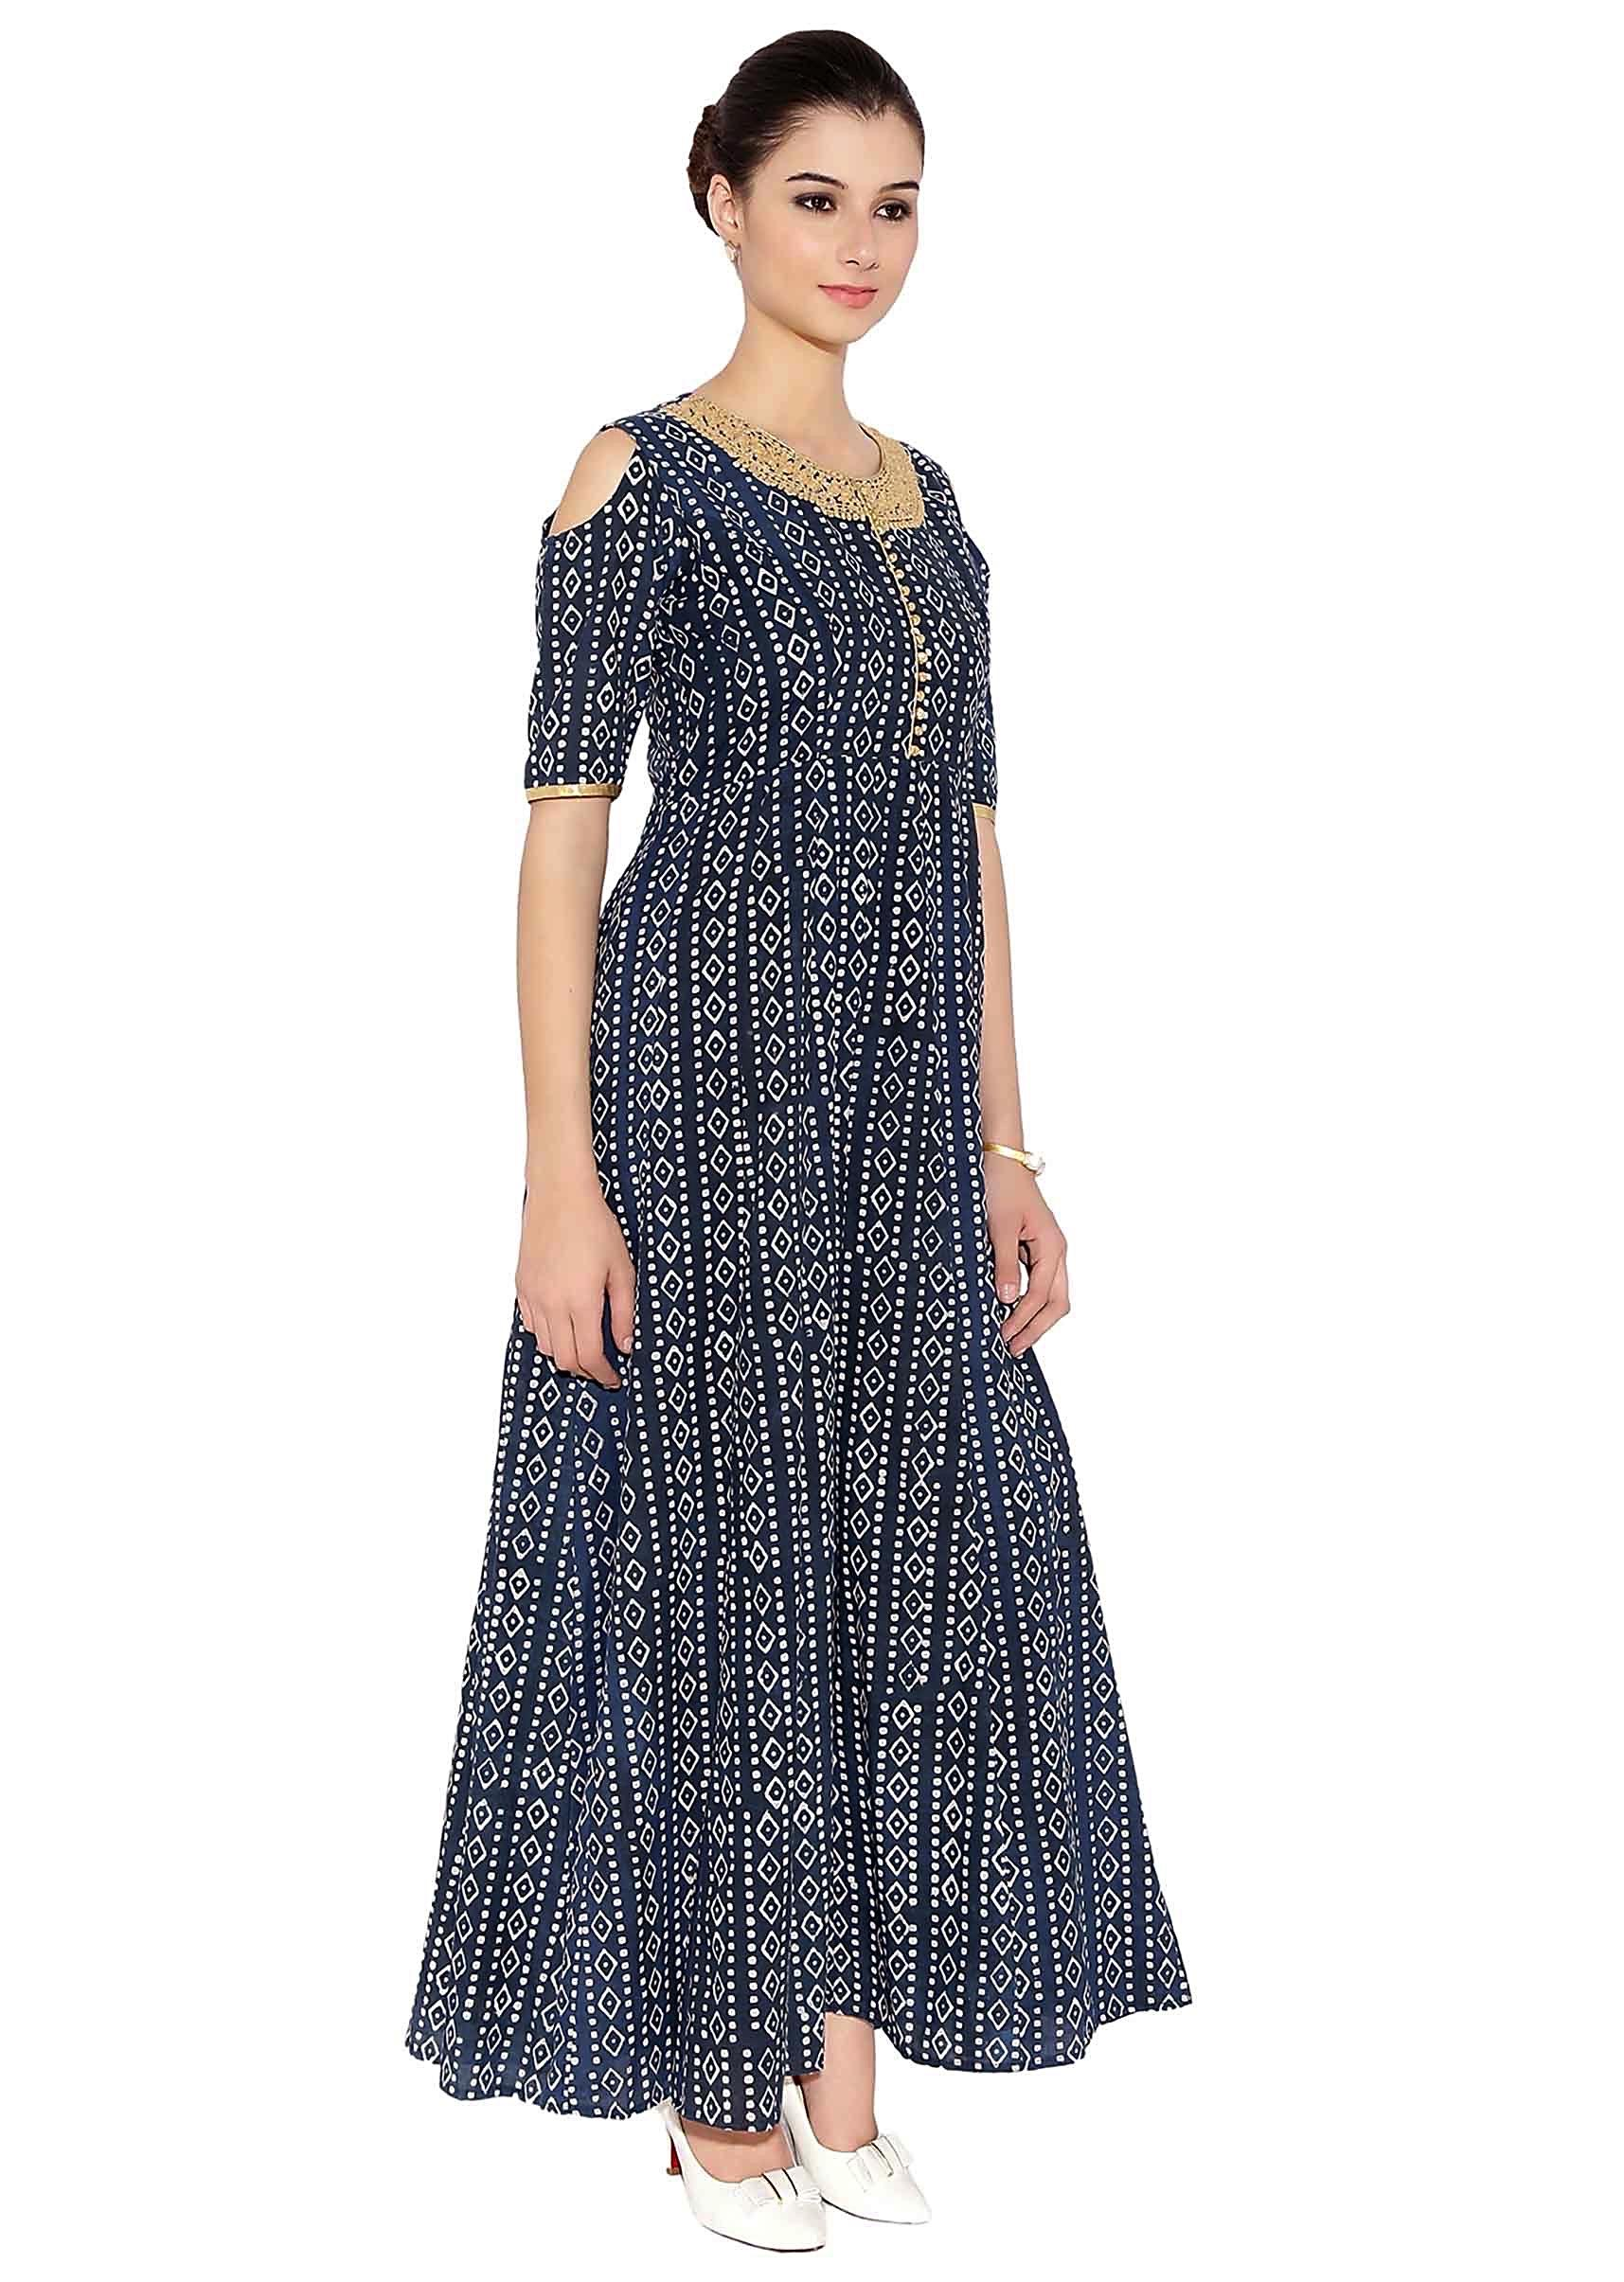 5758c5db7030 Grey Blue Cotton Kurti With Cut Out Shoulder Style Kurti With Thread  Embroider On Neck And